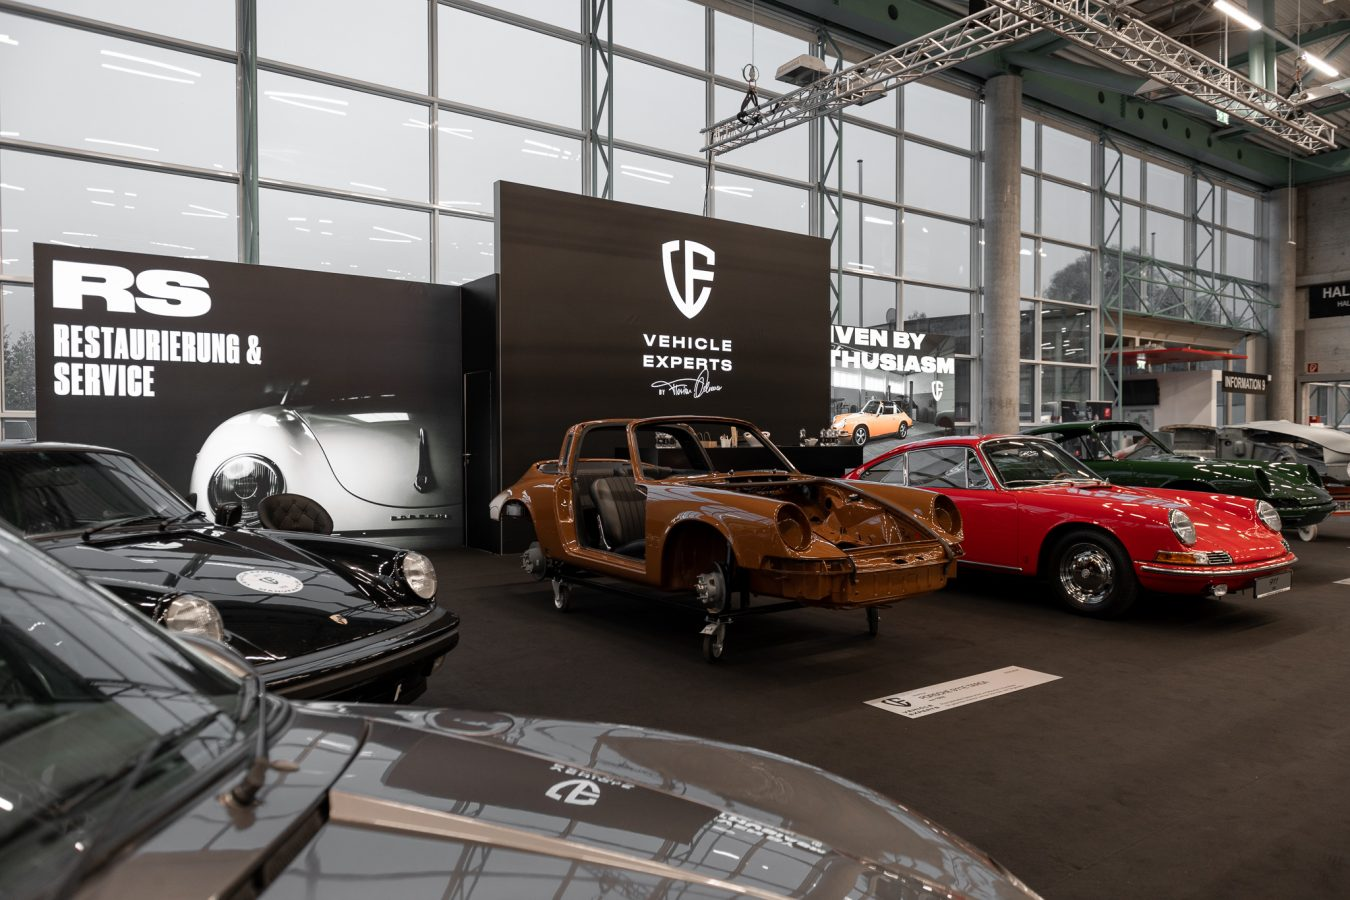 Vehicle Experts Ausstellung